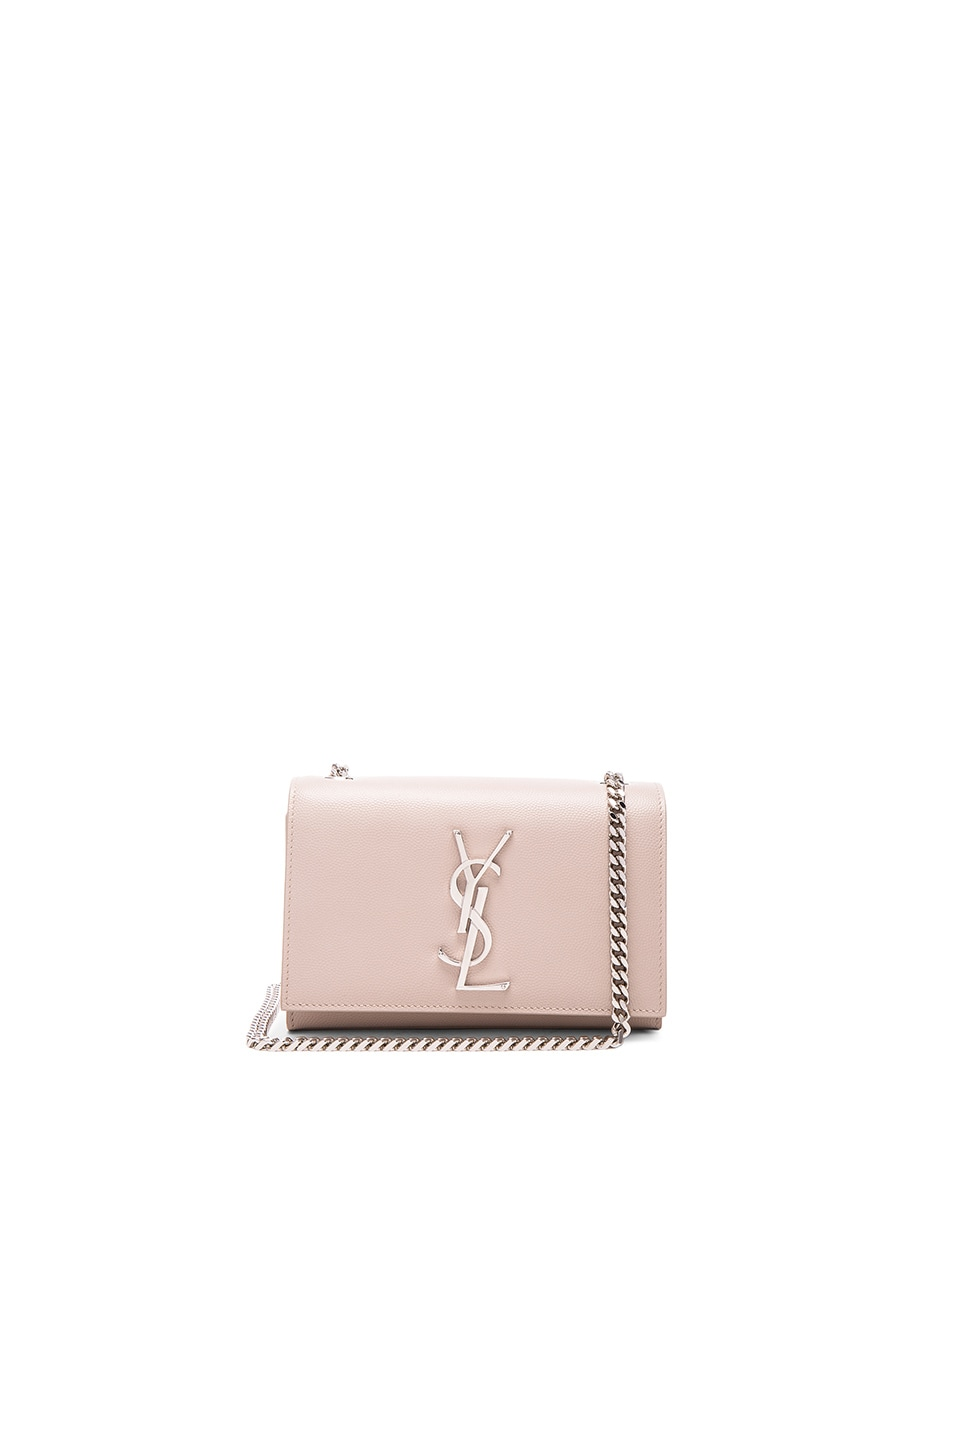 SAINT LAURENT Metallic Chain Wallet